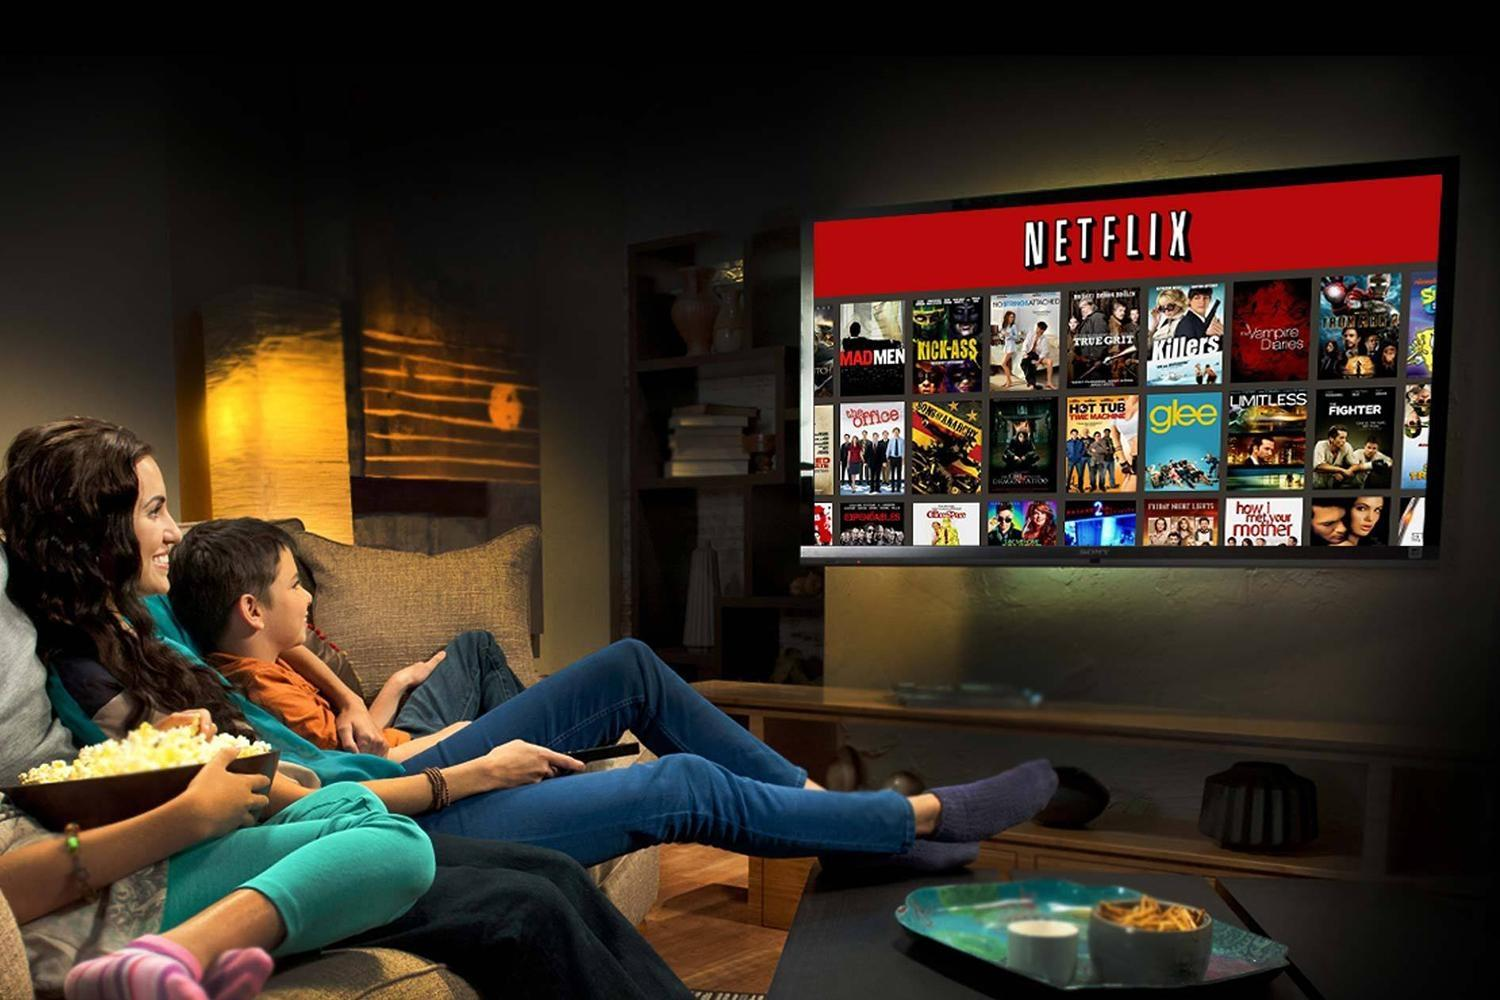 Netflix to Soon Have Its Own Chain of Movie Theaters